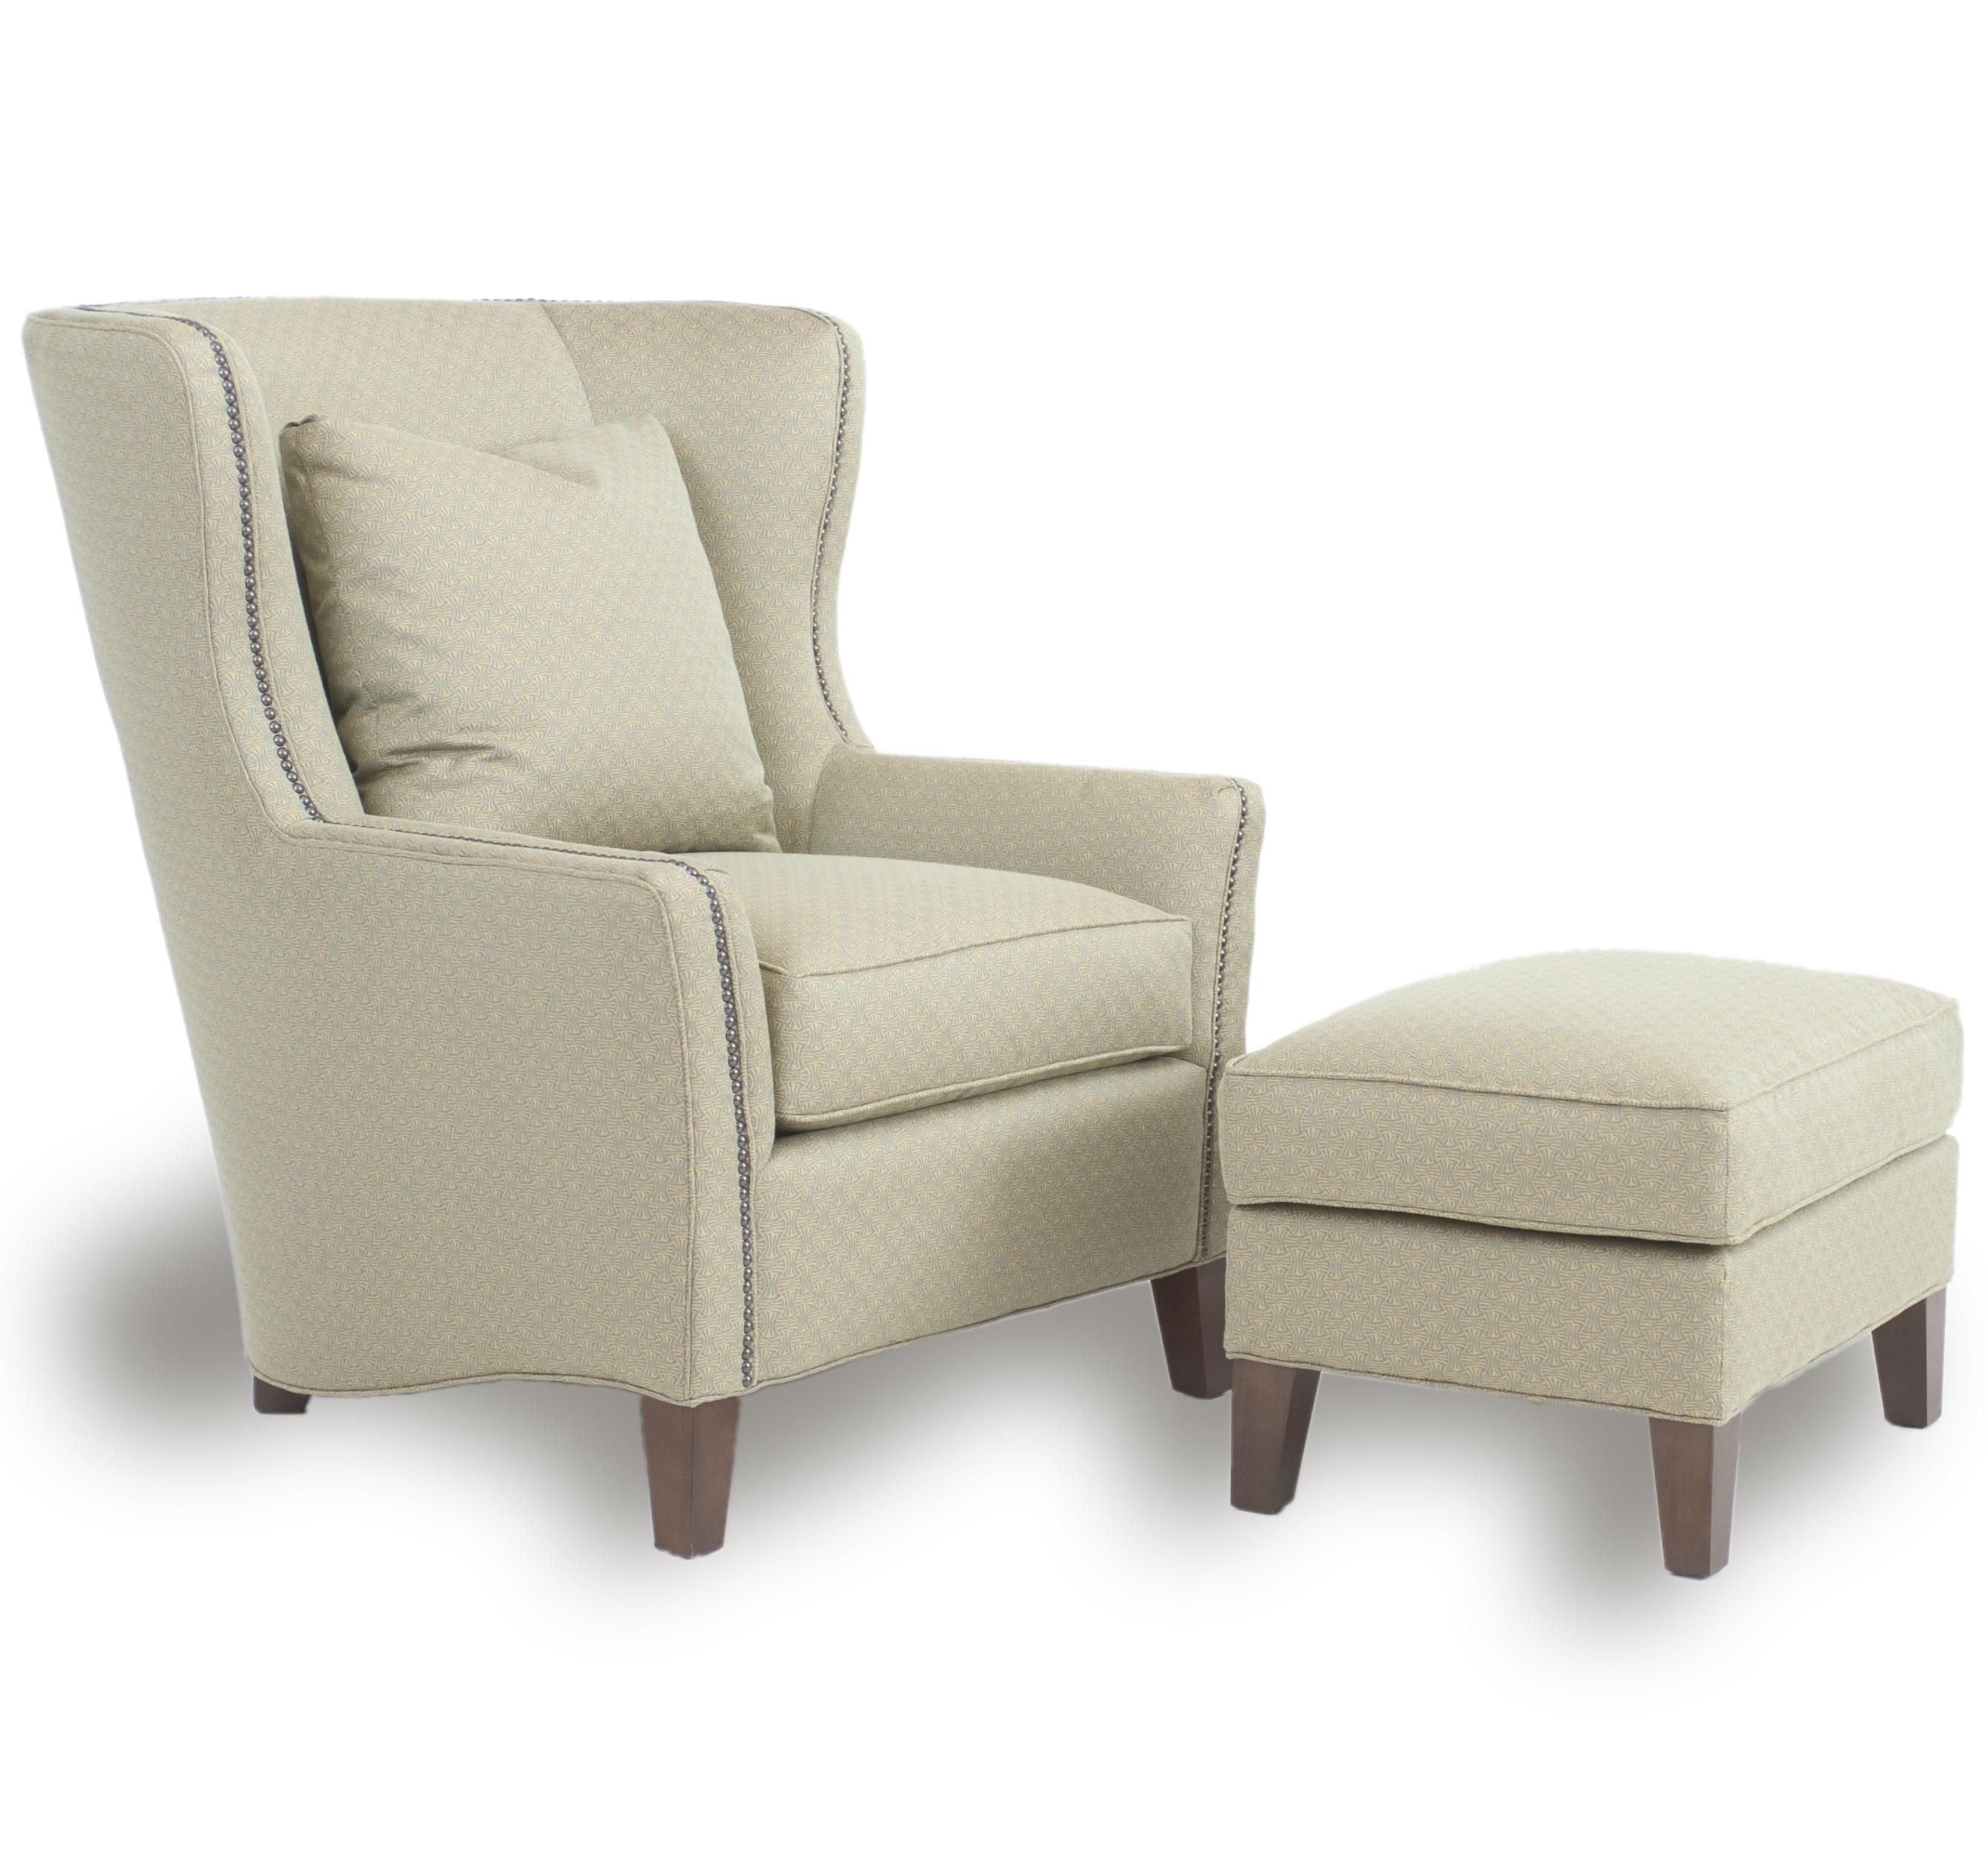 Wingback Recliner Chair Accent Chairs And Ottomans Sb Wingback Chair And Ottoman By Smith Brothers At Dunk Bright Furniture